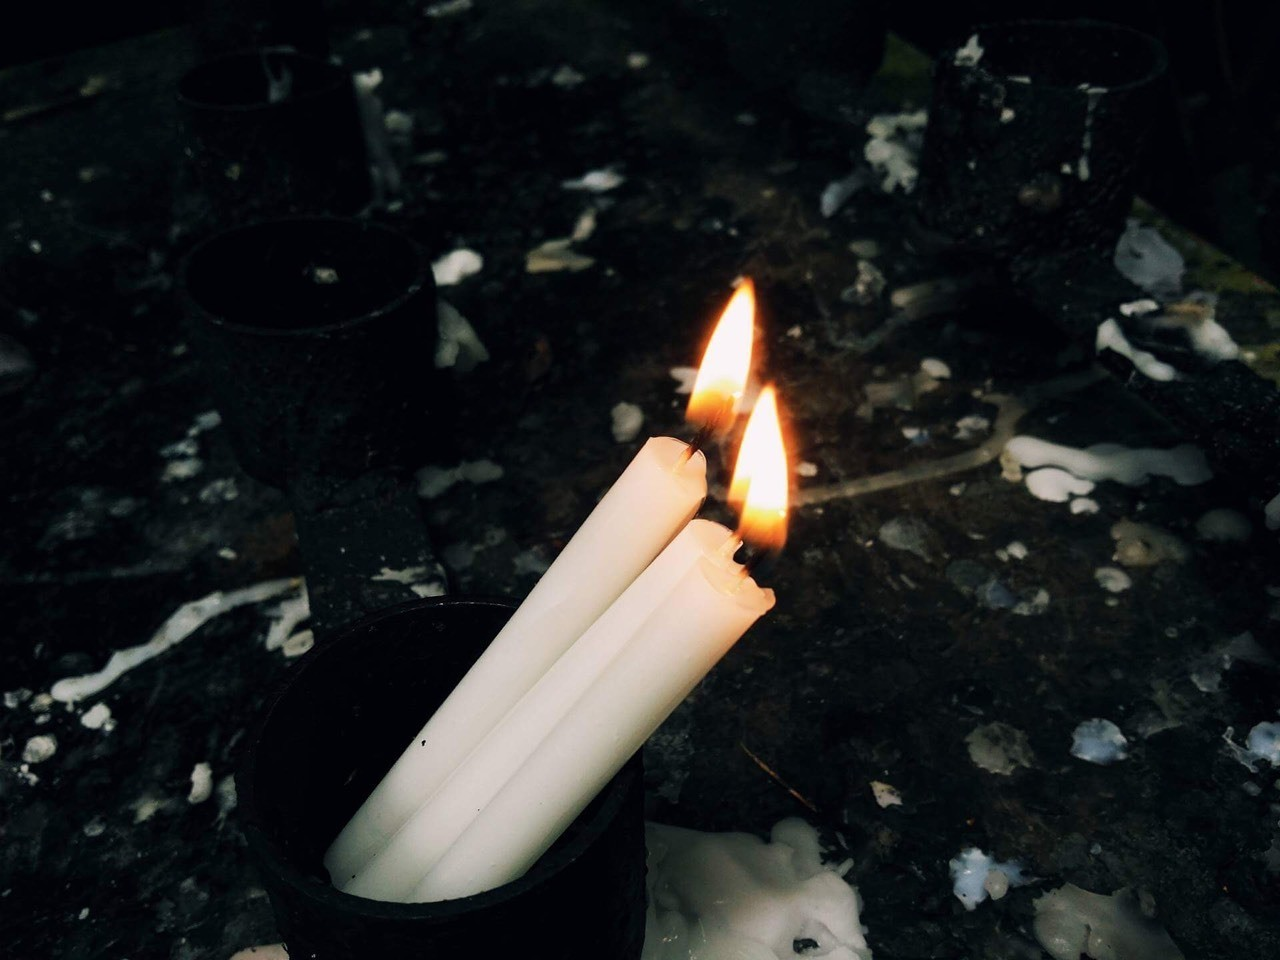 (For Science) A lit candle is a prime example of combustion. Which described as a high-temperature chemical reaction between a fuel and an oxidant, which is primarily oxygen, that produces oxidized, often gaseous in a mixture termed as smoke. The heat found in the flame is what causes it to be self-sustained. Combustion is often a complicated sequence of elementary radical reactions. (By: Andrei Medua)